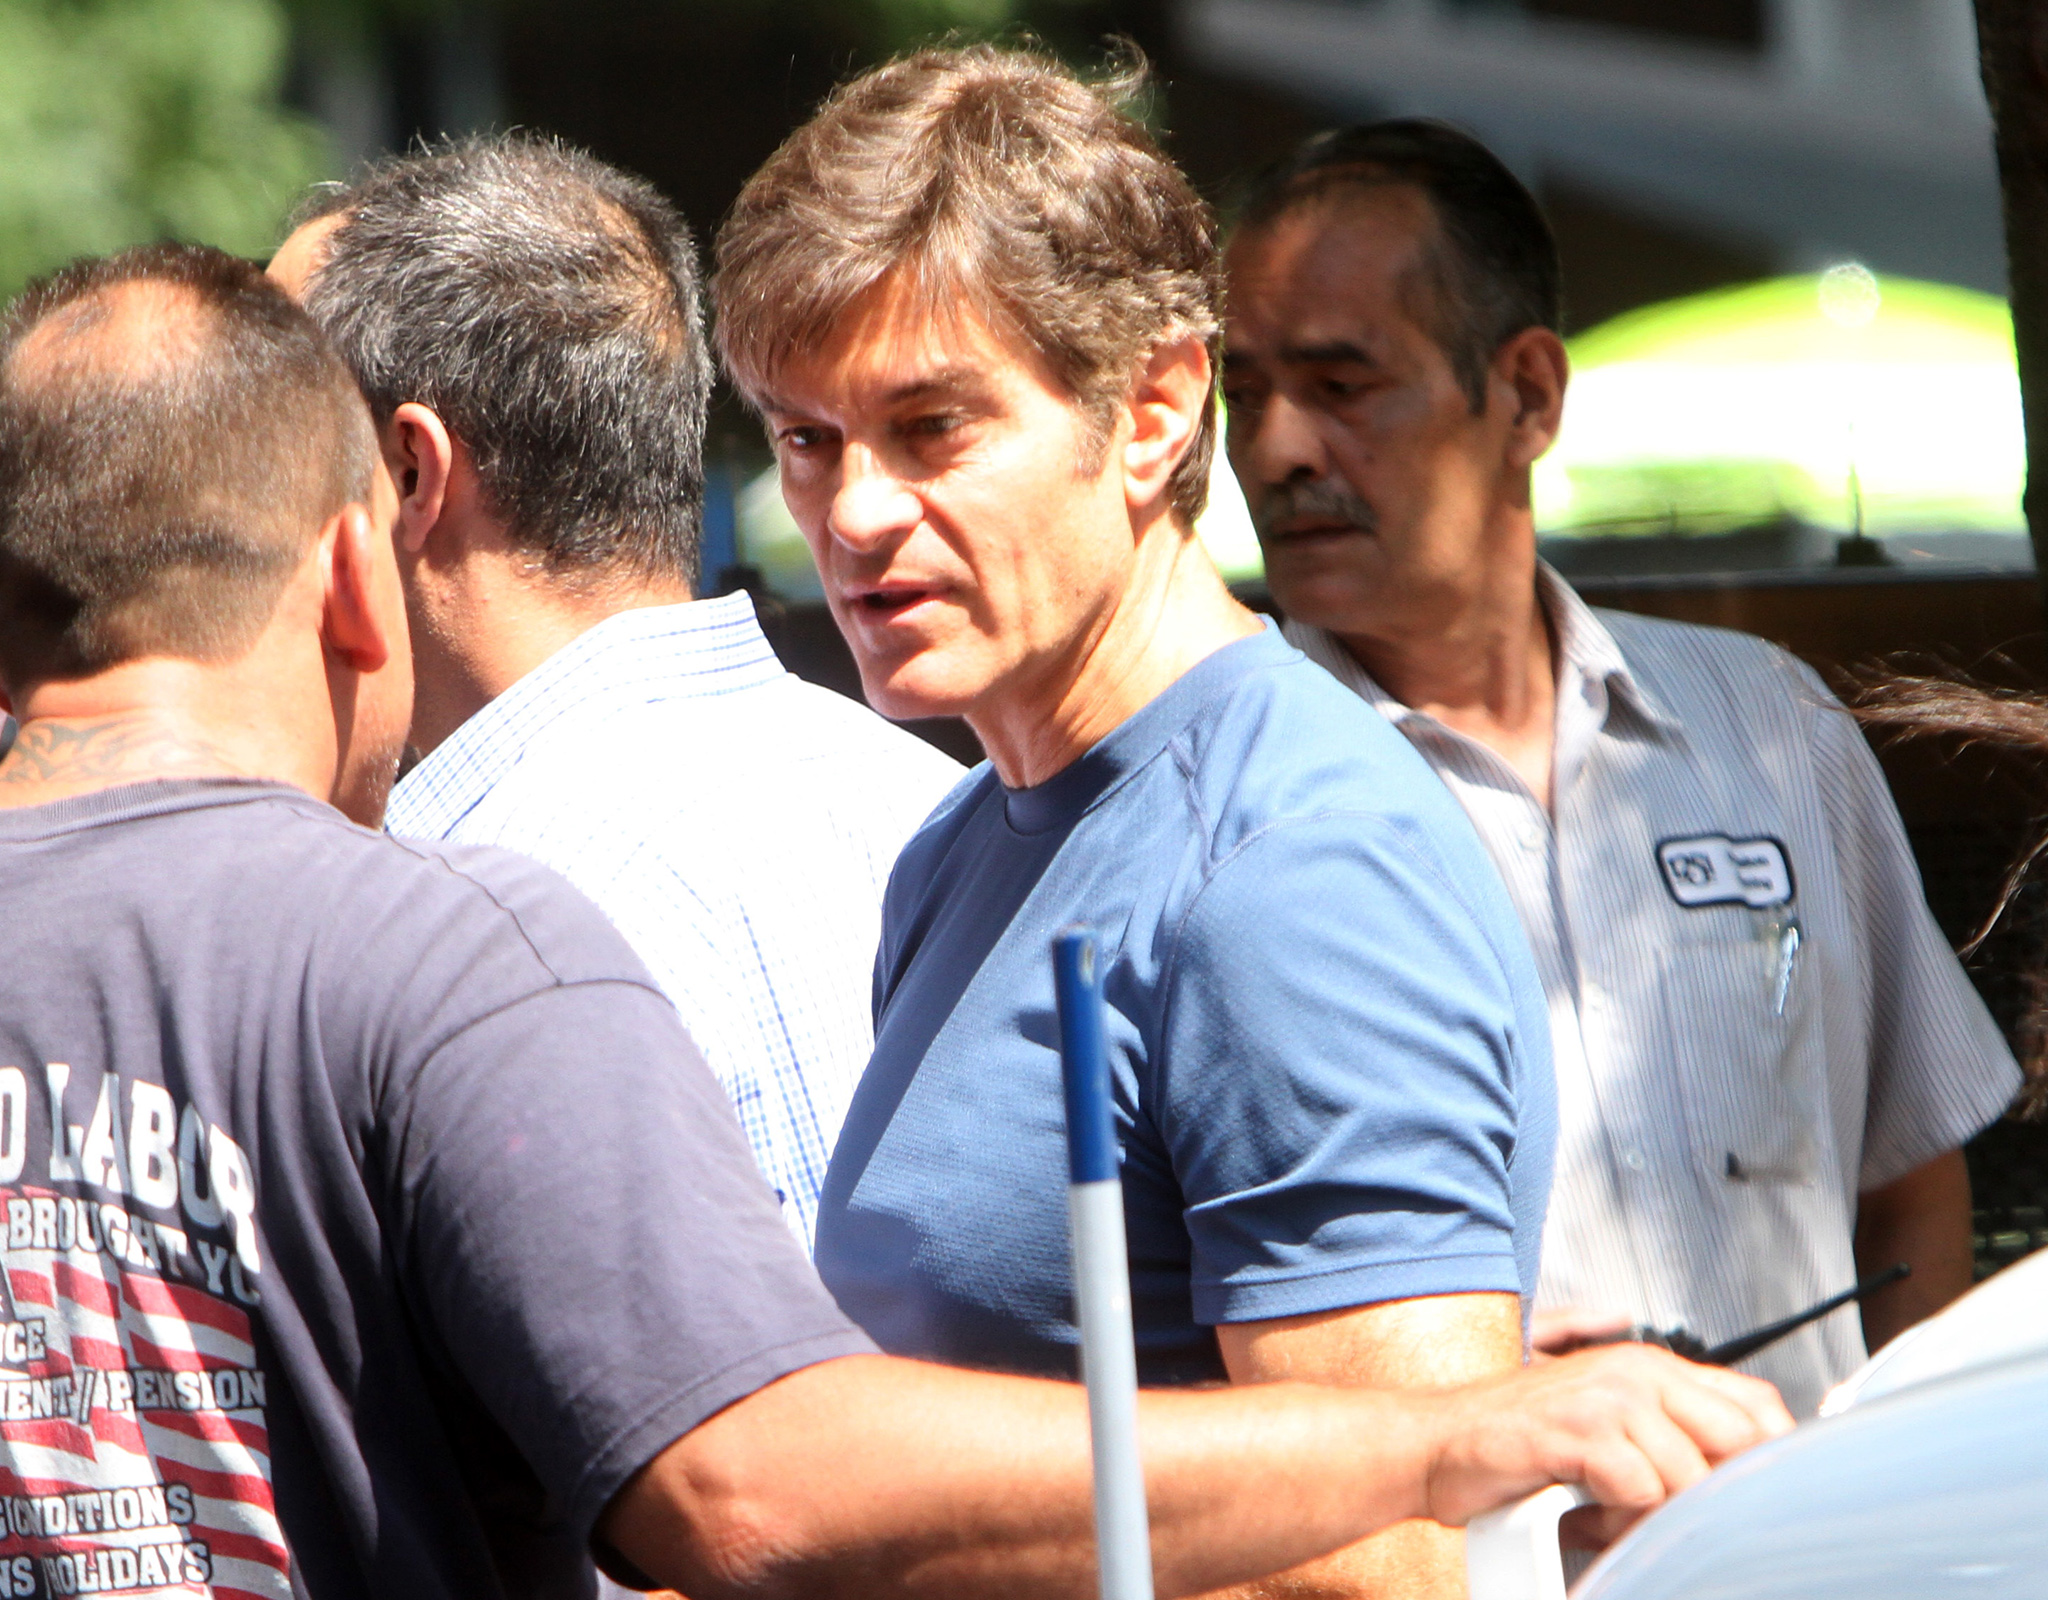 Dr. Oz on the scene (Roger Wong/INFphoto.com)